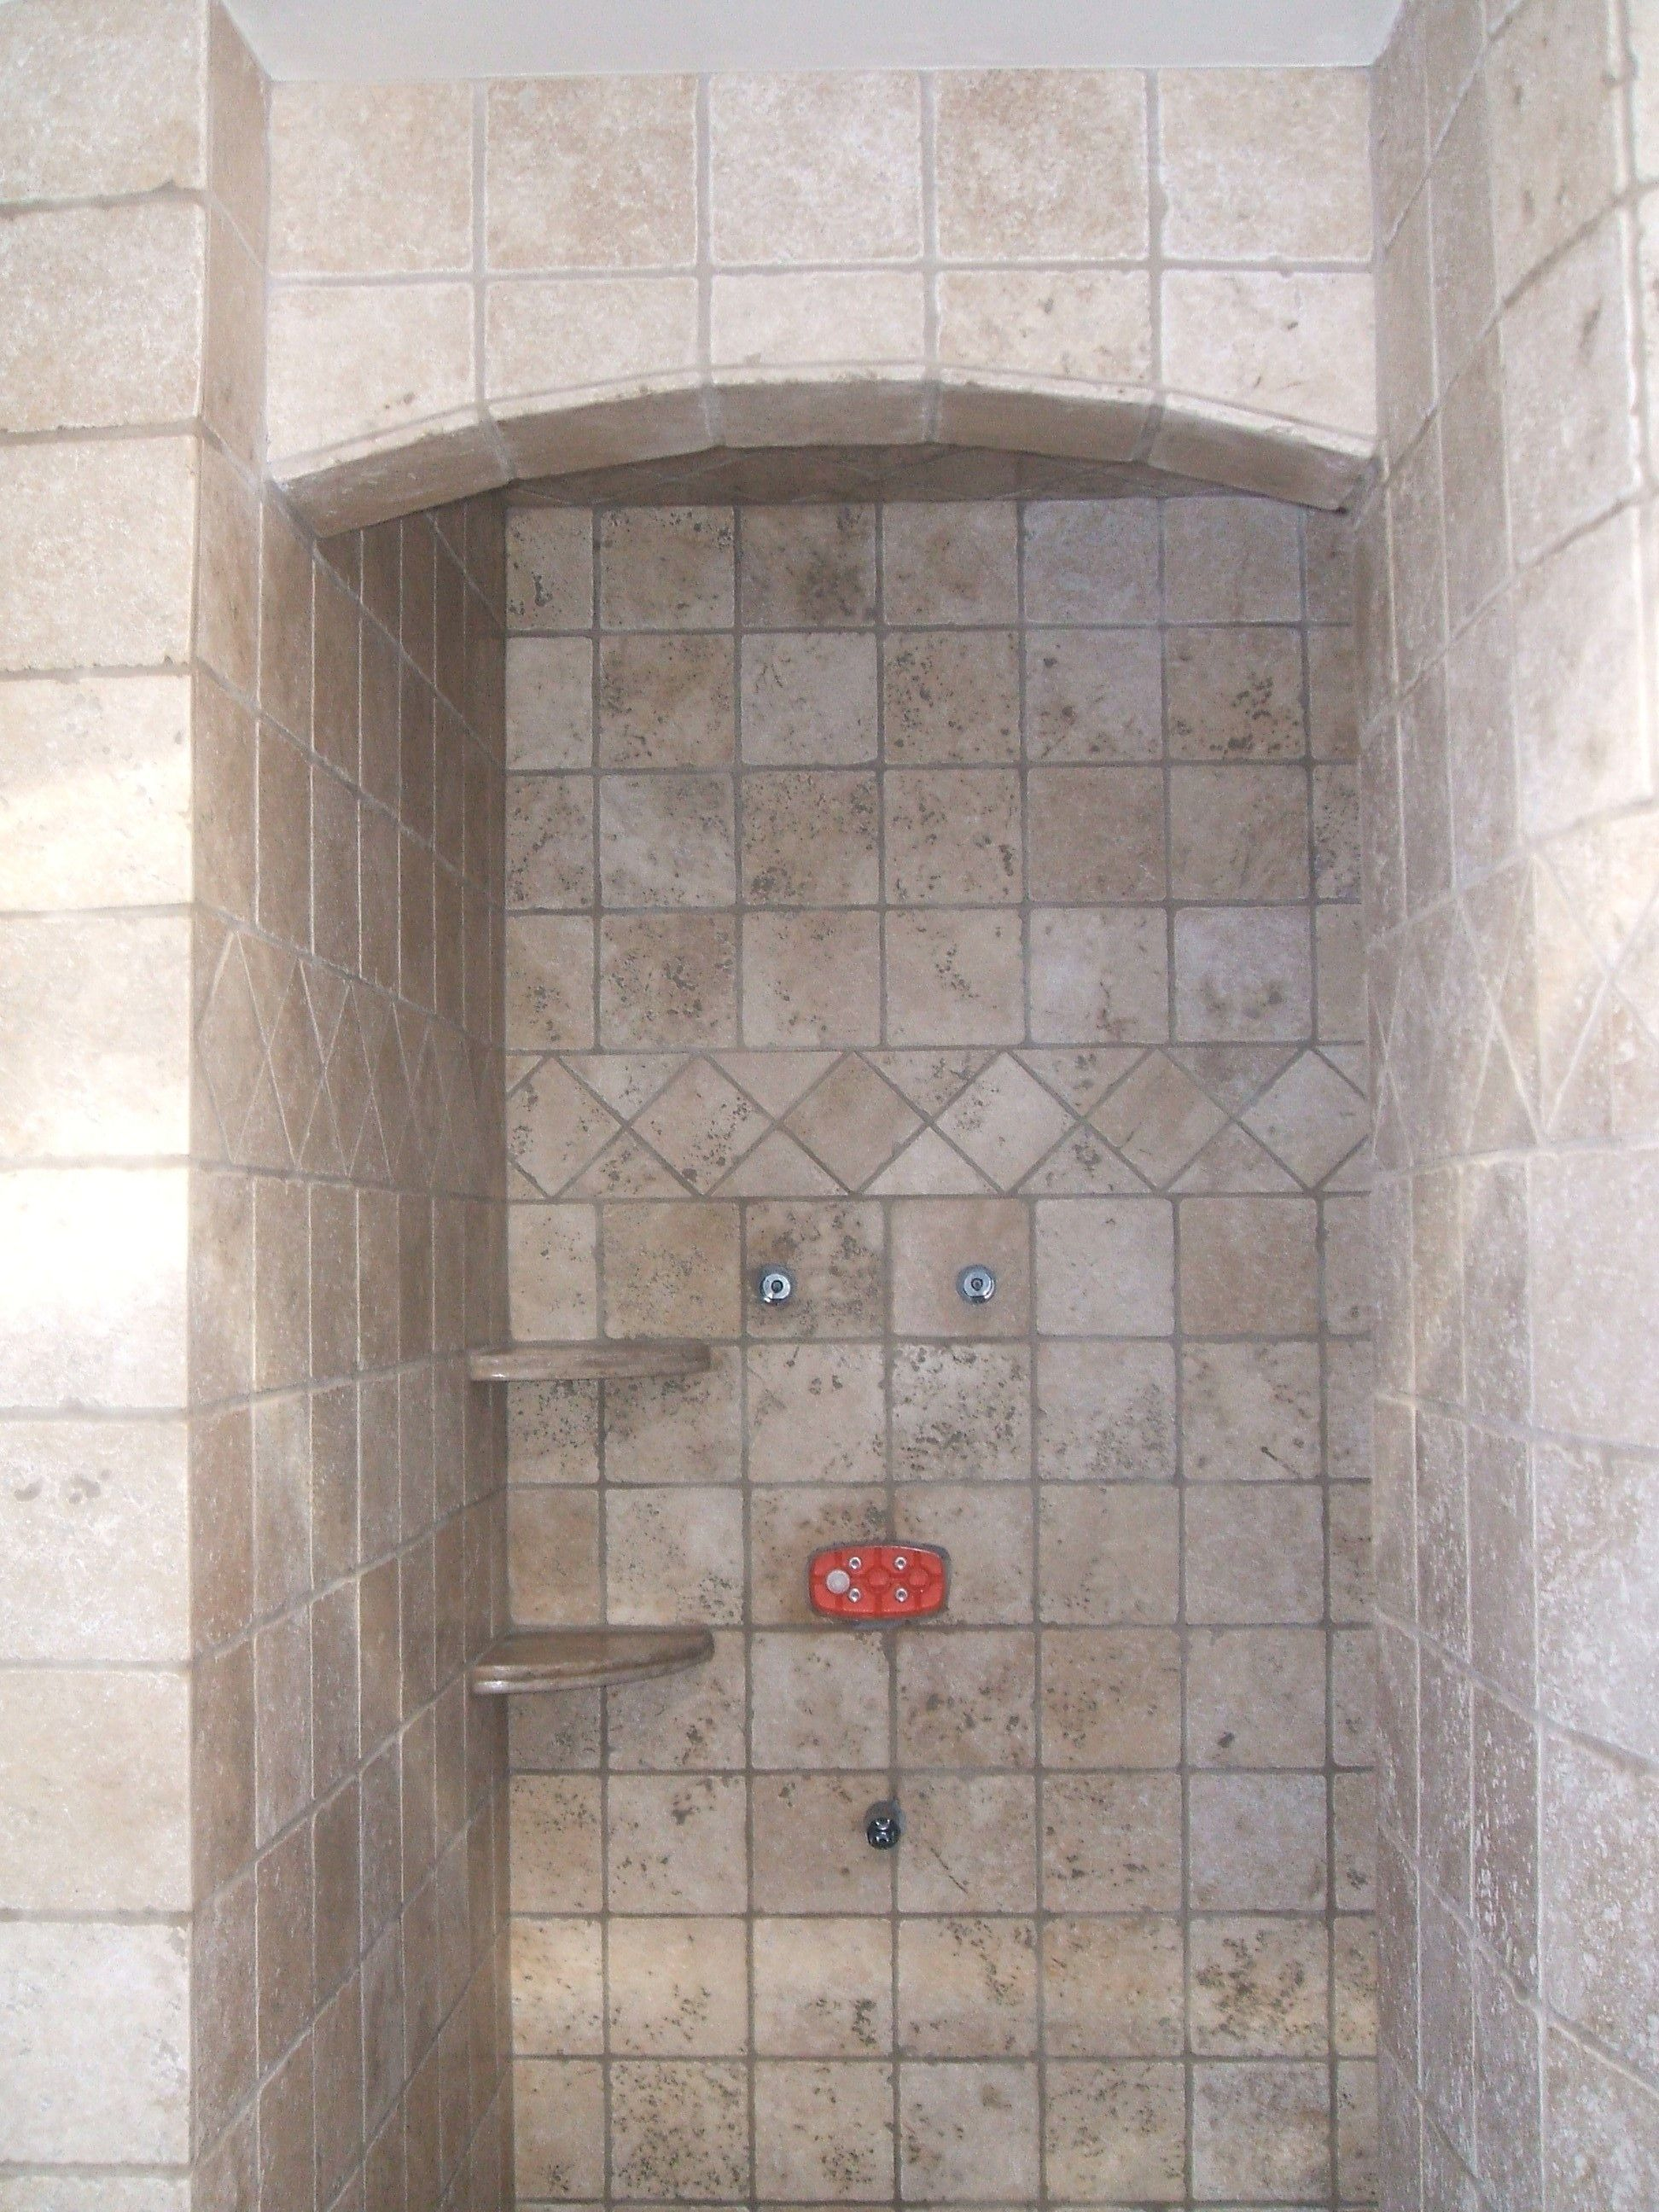 Terrific ceramic tile shower ideas small bathrooms with for Tiny bathroom tile ideas